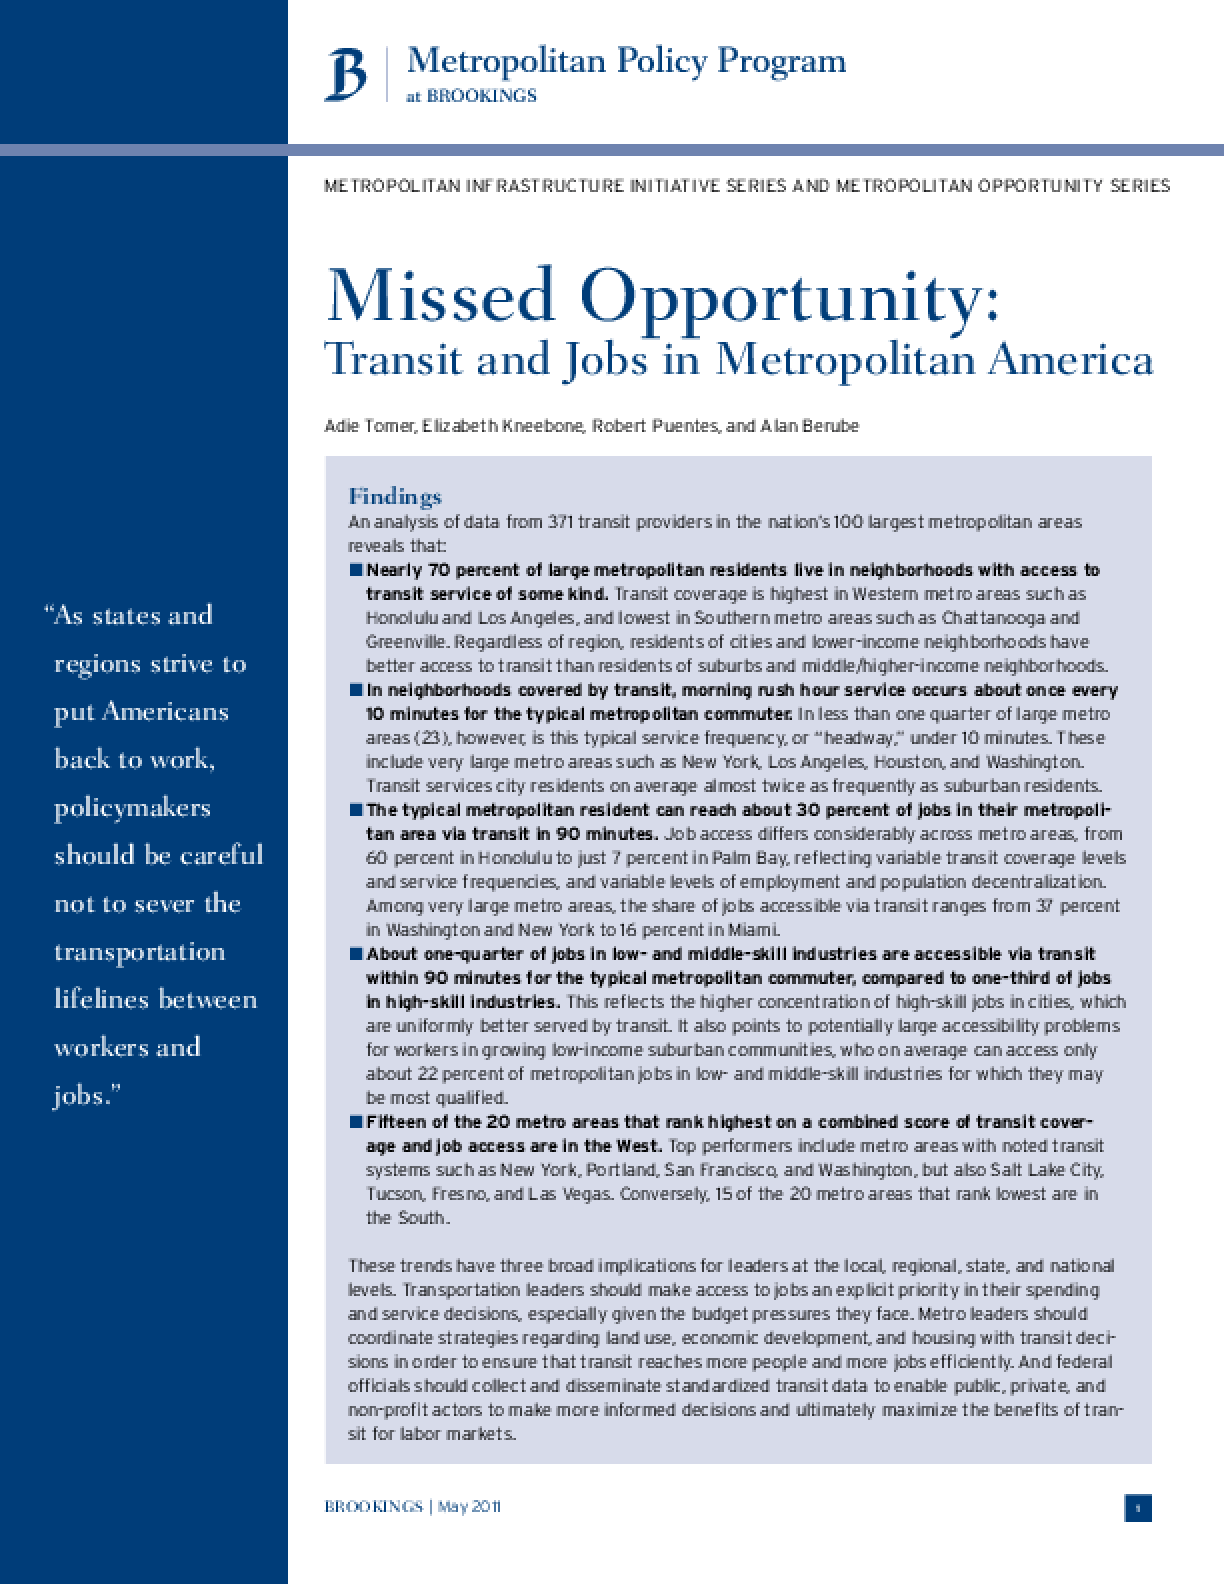 Missed Opportunity: Transit and Jobs in Metropolitan America